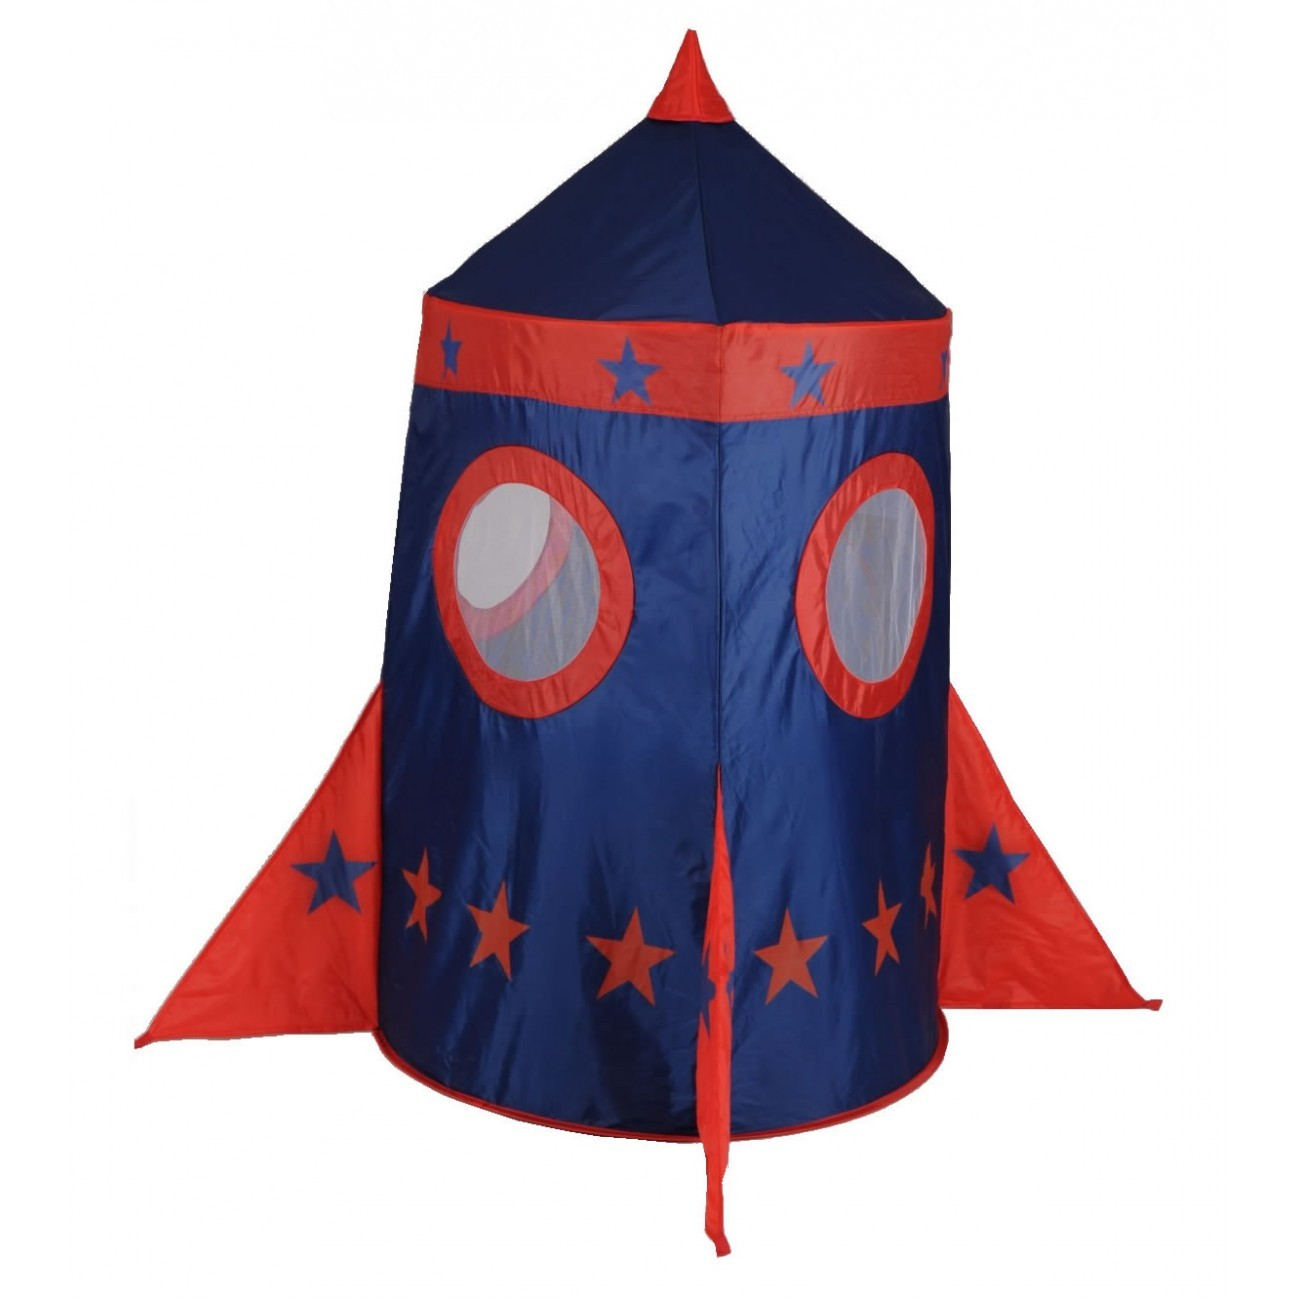 Kids Rocket Tent Red Wrappings